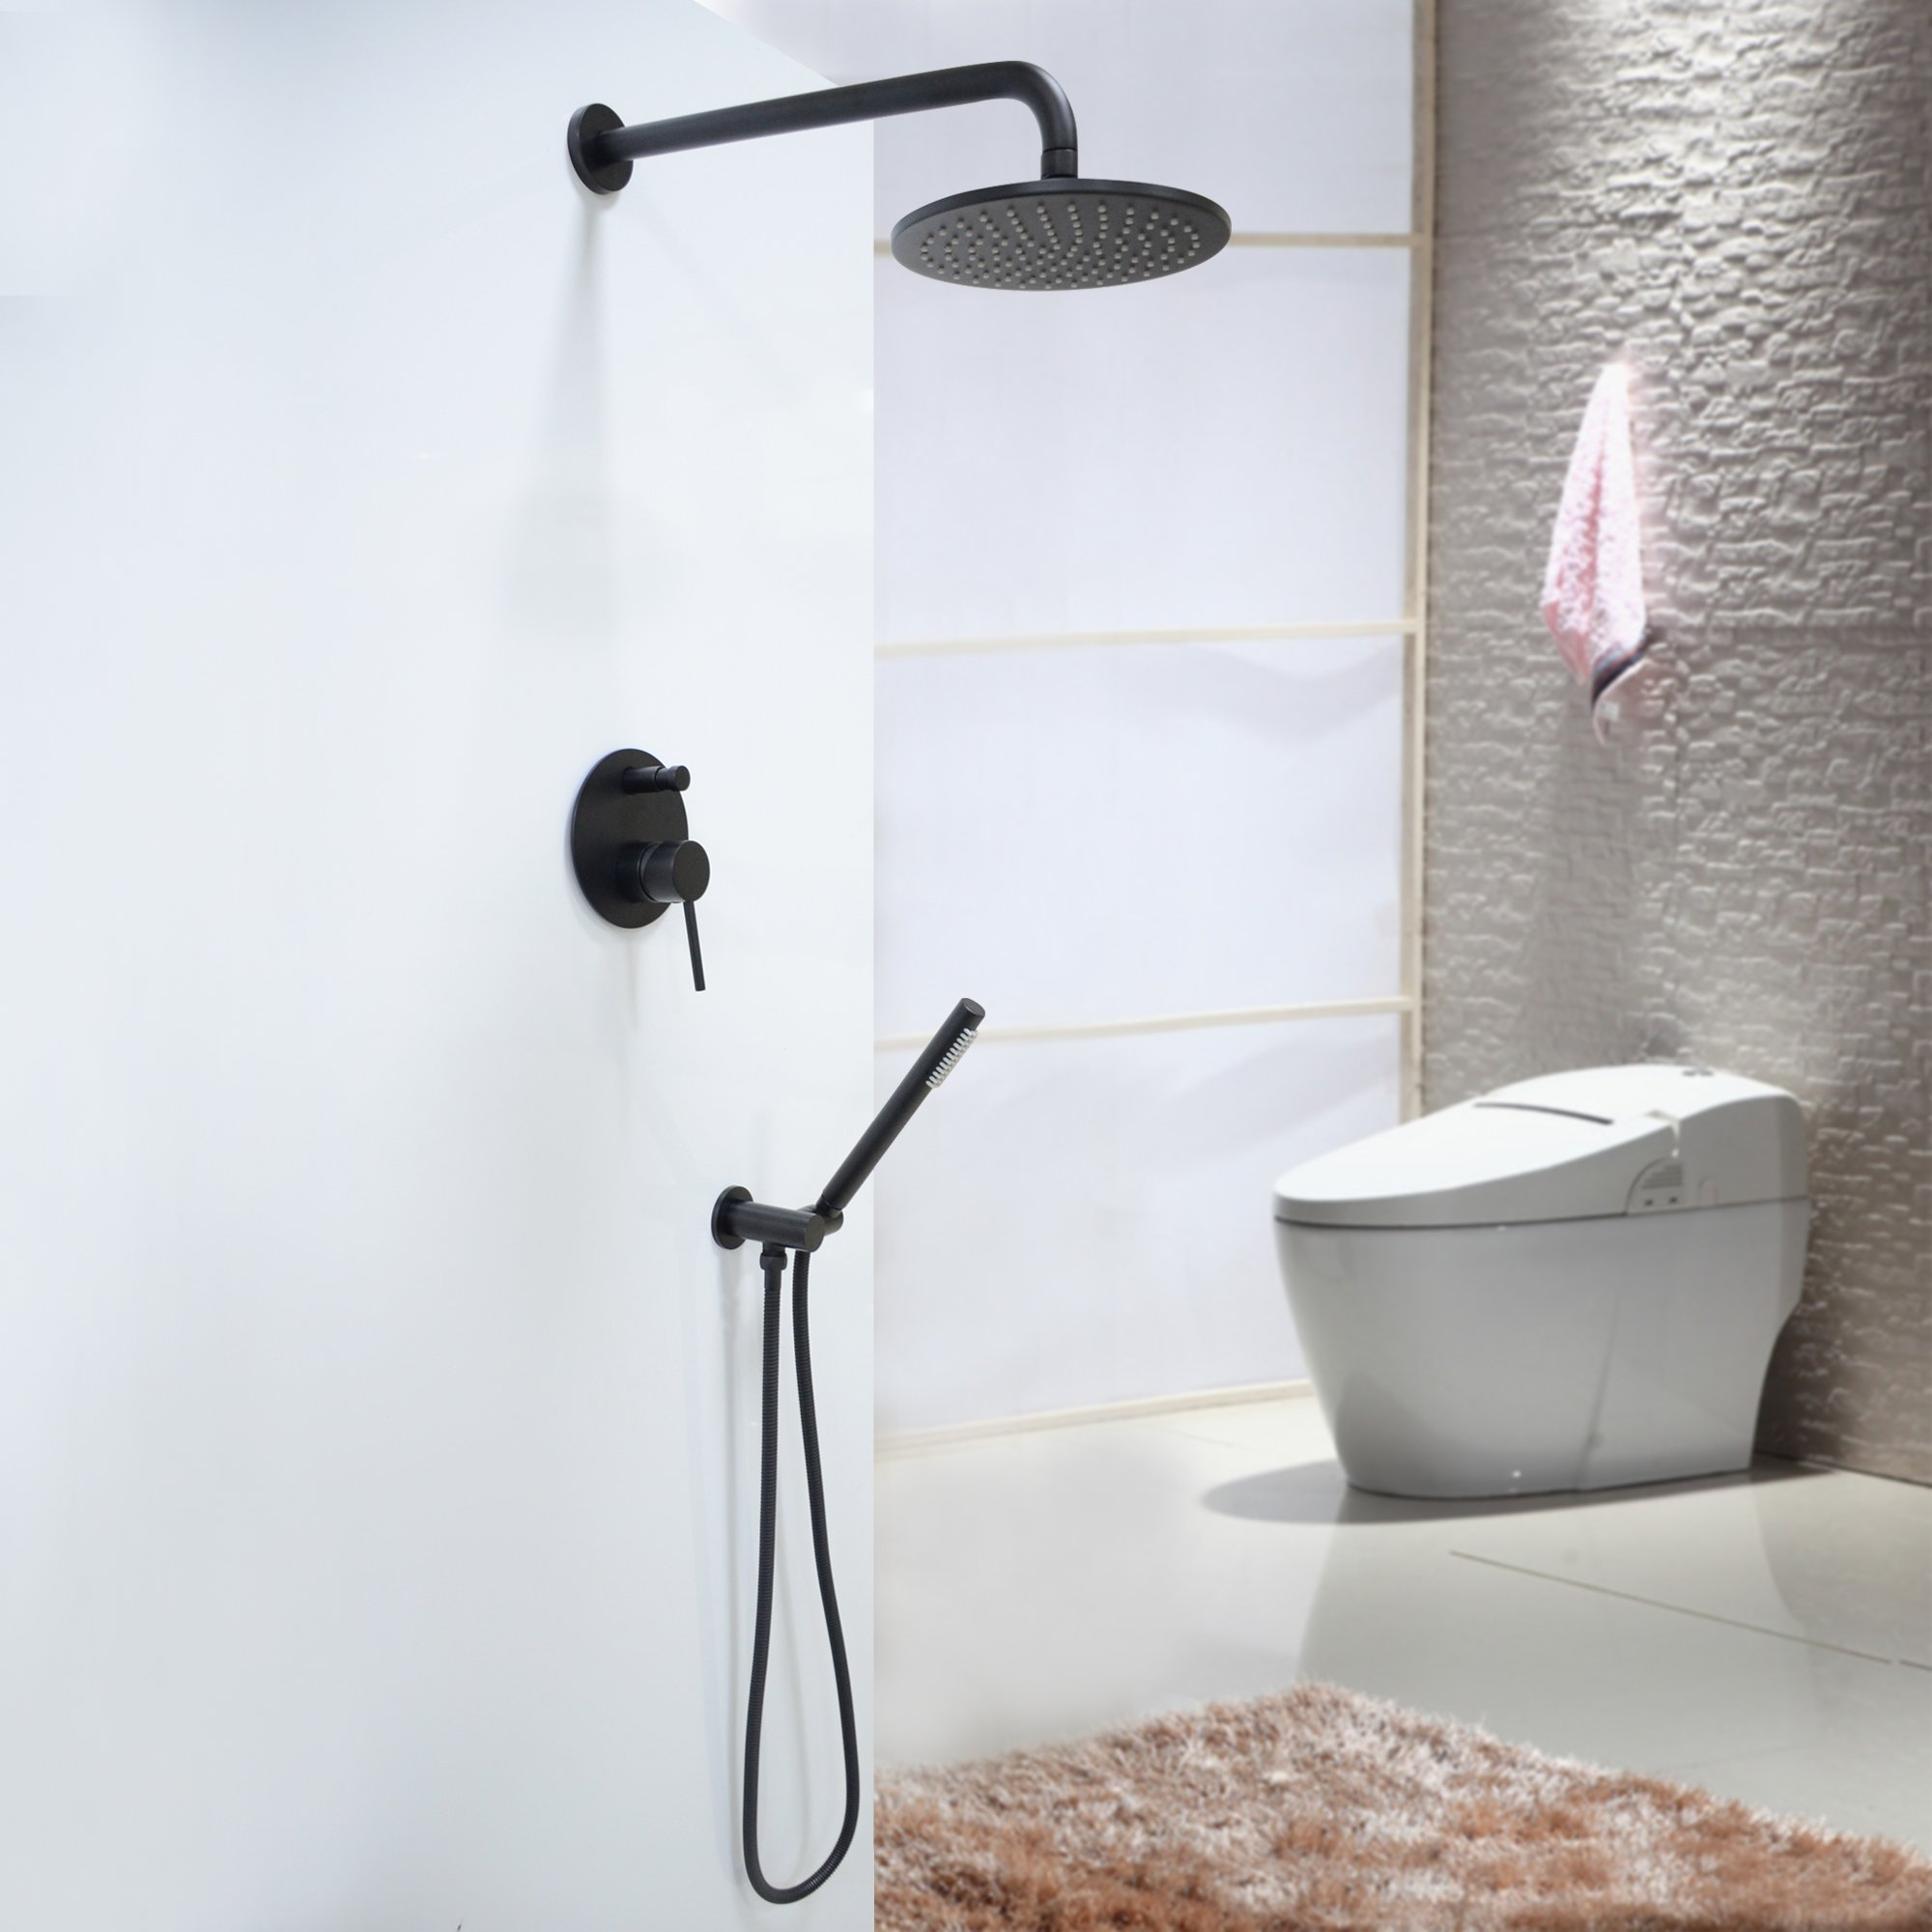 Luxury Oil Rubbed Bronze Black Bath Shower Faucet Set 8'' Rain Shower Head + Hand Shower Spray by Sprinkle (Image #2)